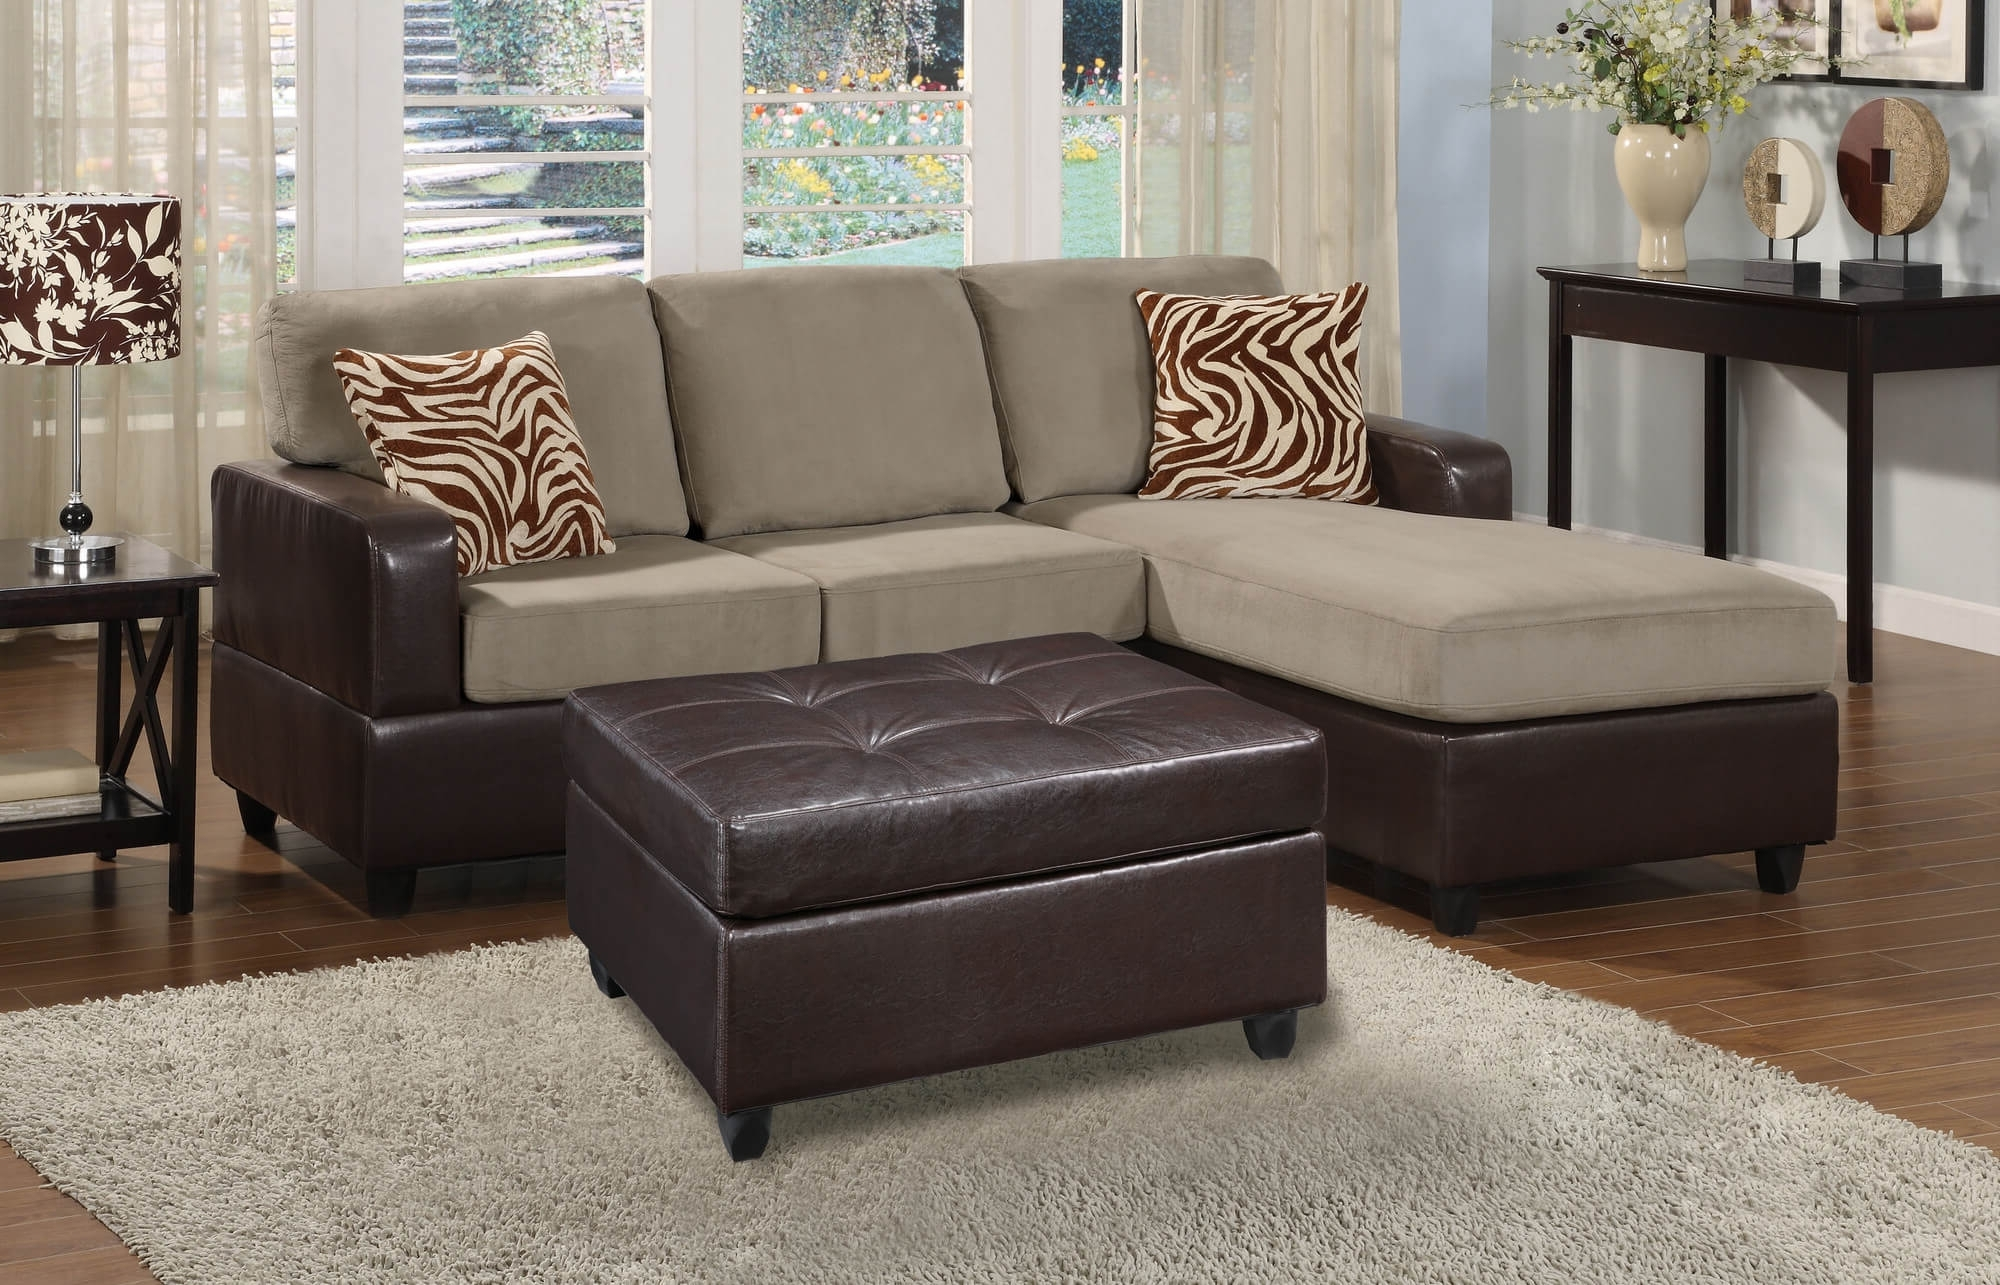 Small Sectional Sofas With Chaise And Ottoman Regarding Most Current 100 Awesome Sectional Sofas Under $1,000 (2018) (View 7 of 20)